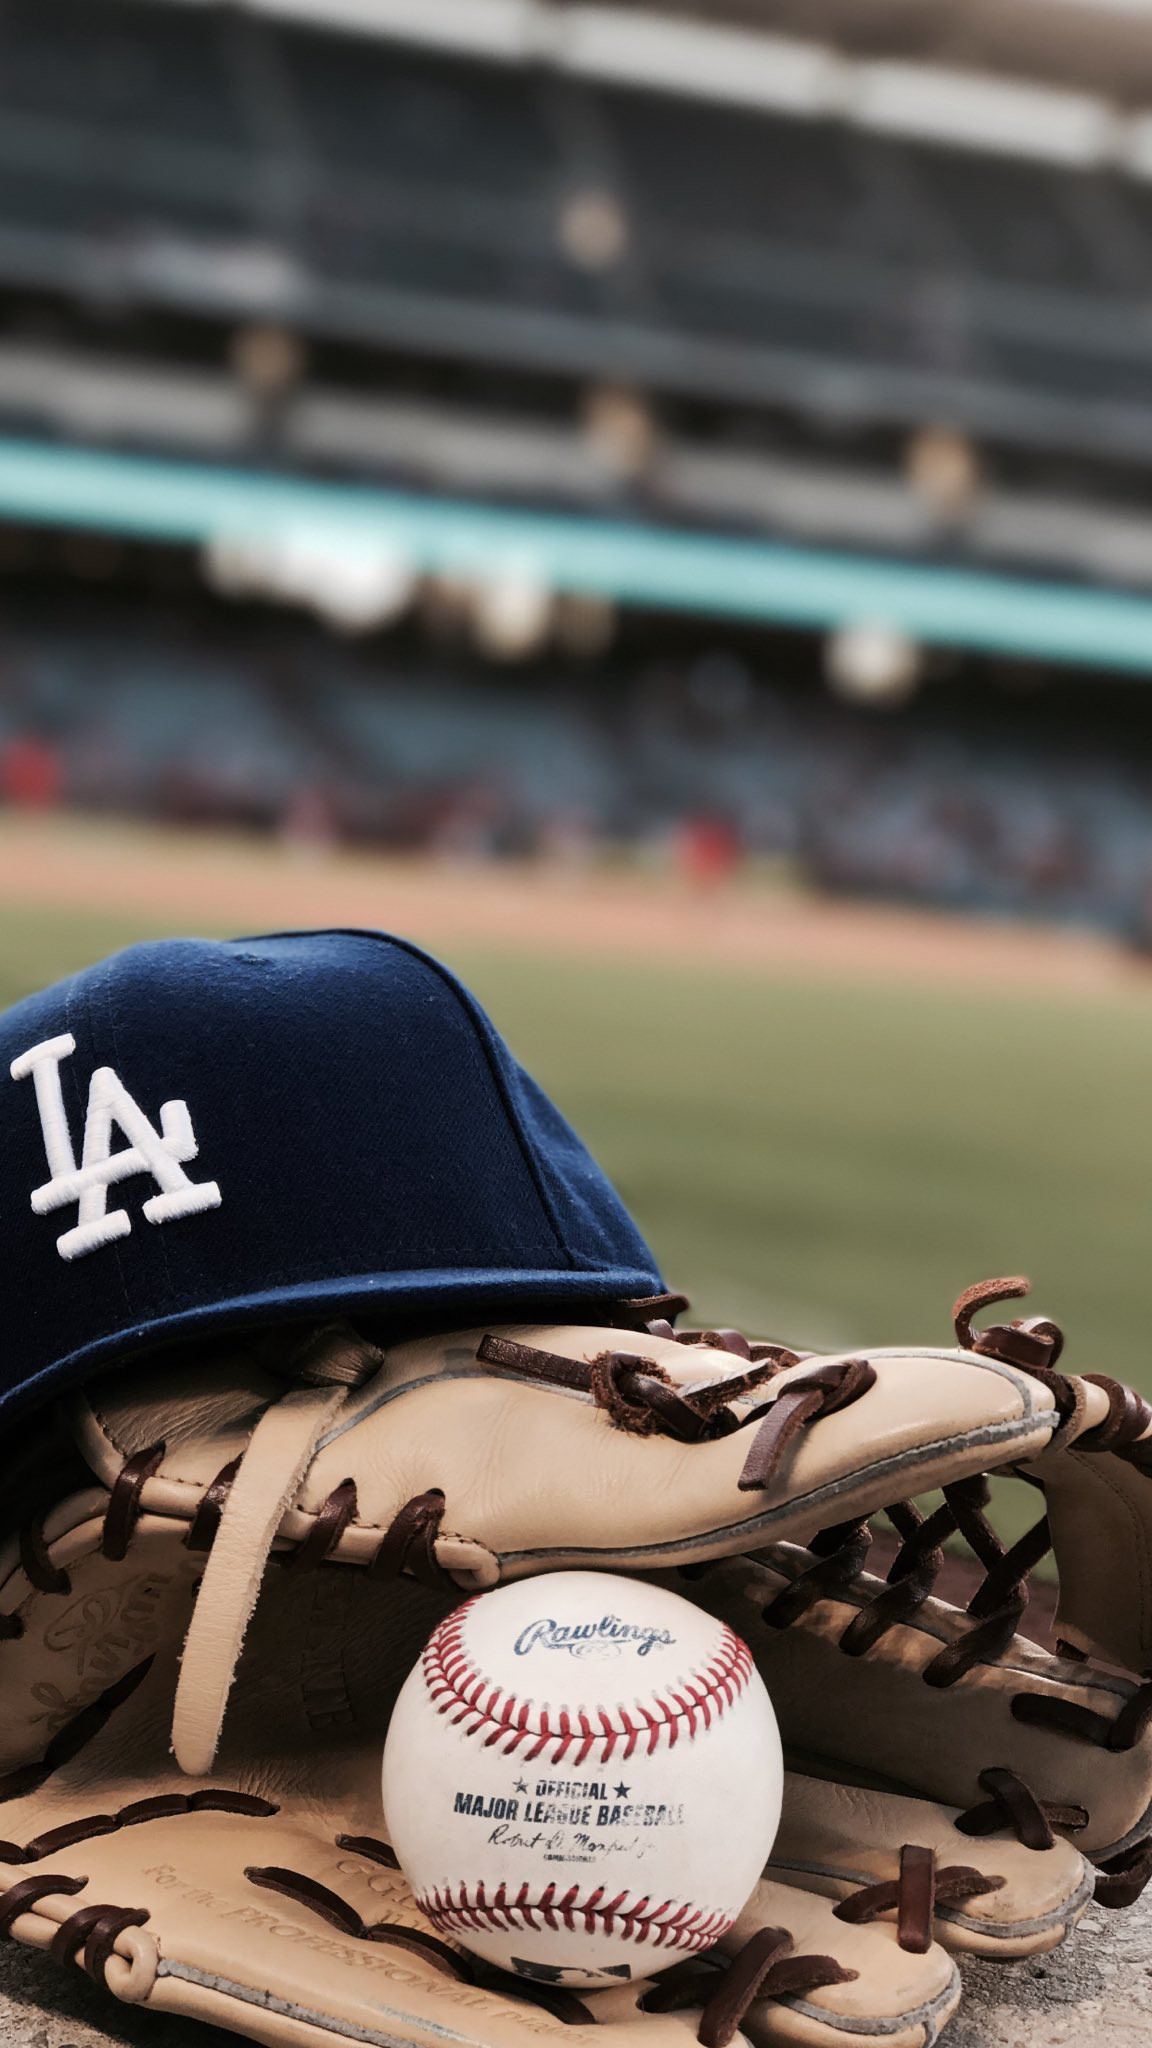 Dodgers Iphone Wallpaper Posted By Ethan Peltier